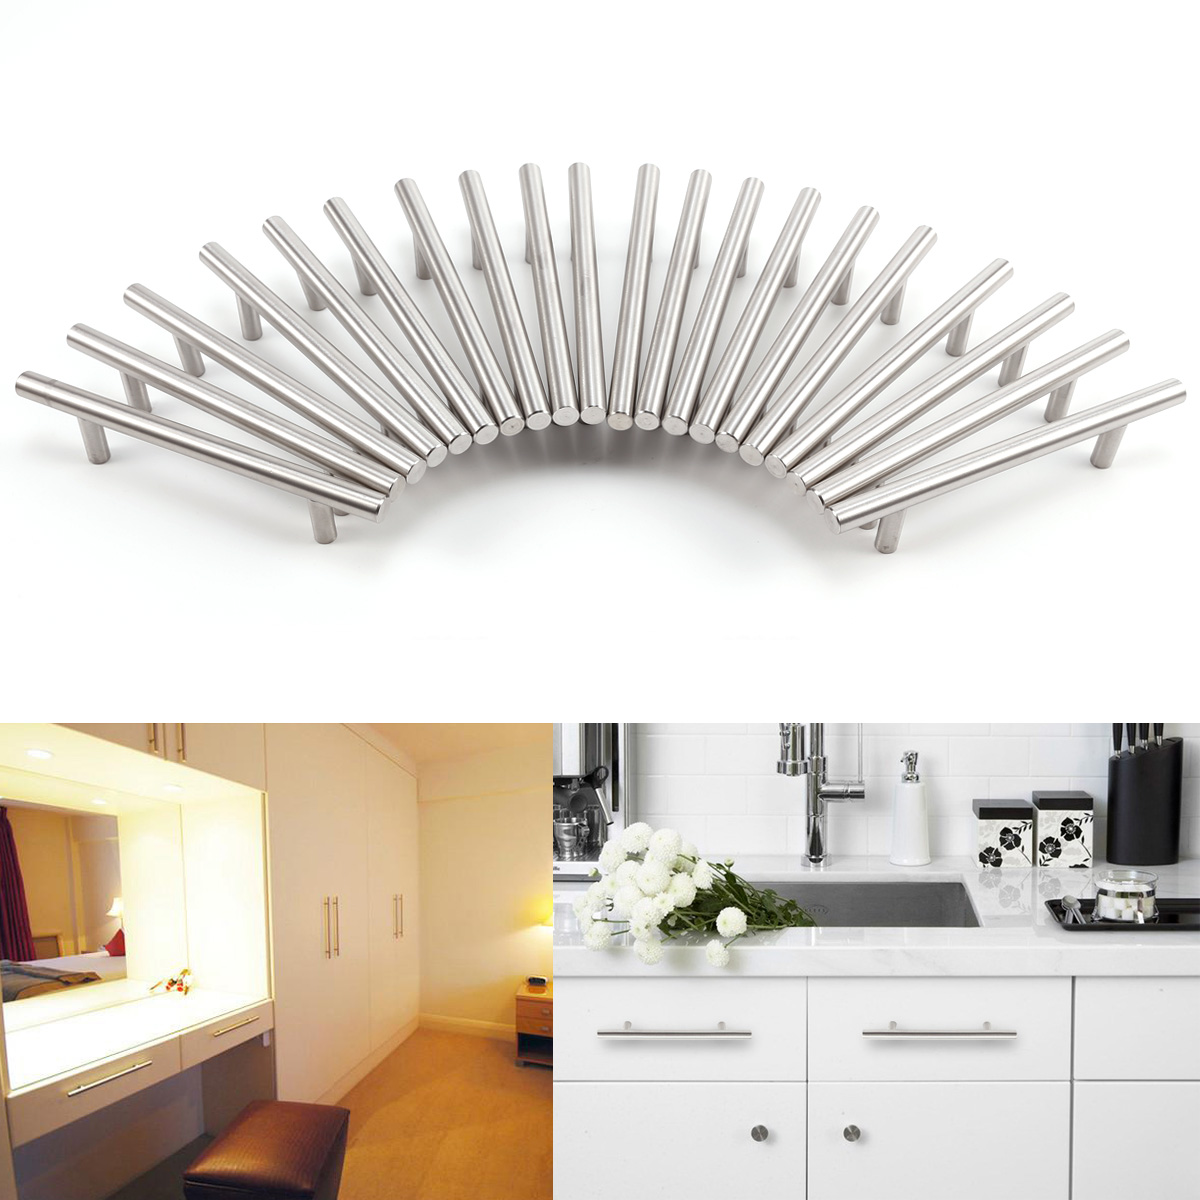 Chrome Handles For Kitchen Cabinets 20 60x T Bar Hollow Chrome Kitchen Cupboard Cabinet Drawer Door